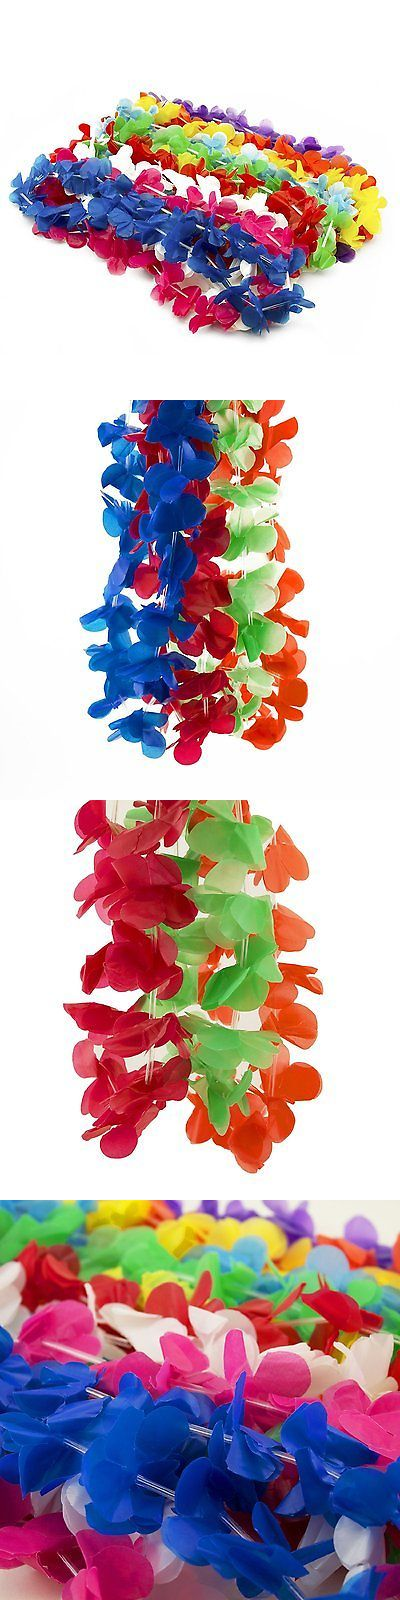 Party Supplies 51017: Hawaiian Flower Leis Luau Plastic Colorful Necklace Beach Grad Party Favors Lot -> BUY IT NOW ONLY: $39.95 on eBay!